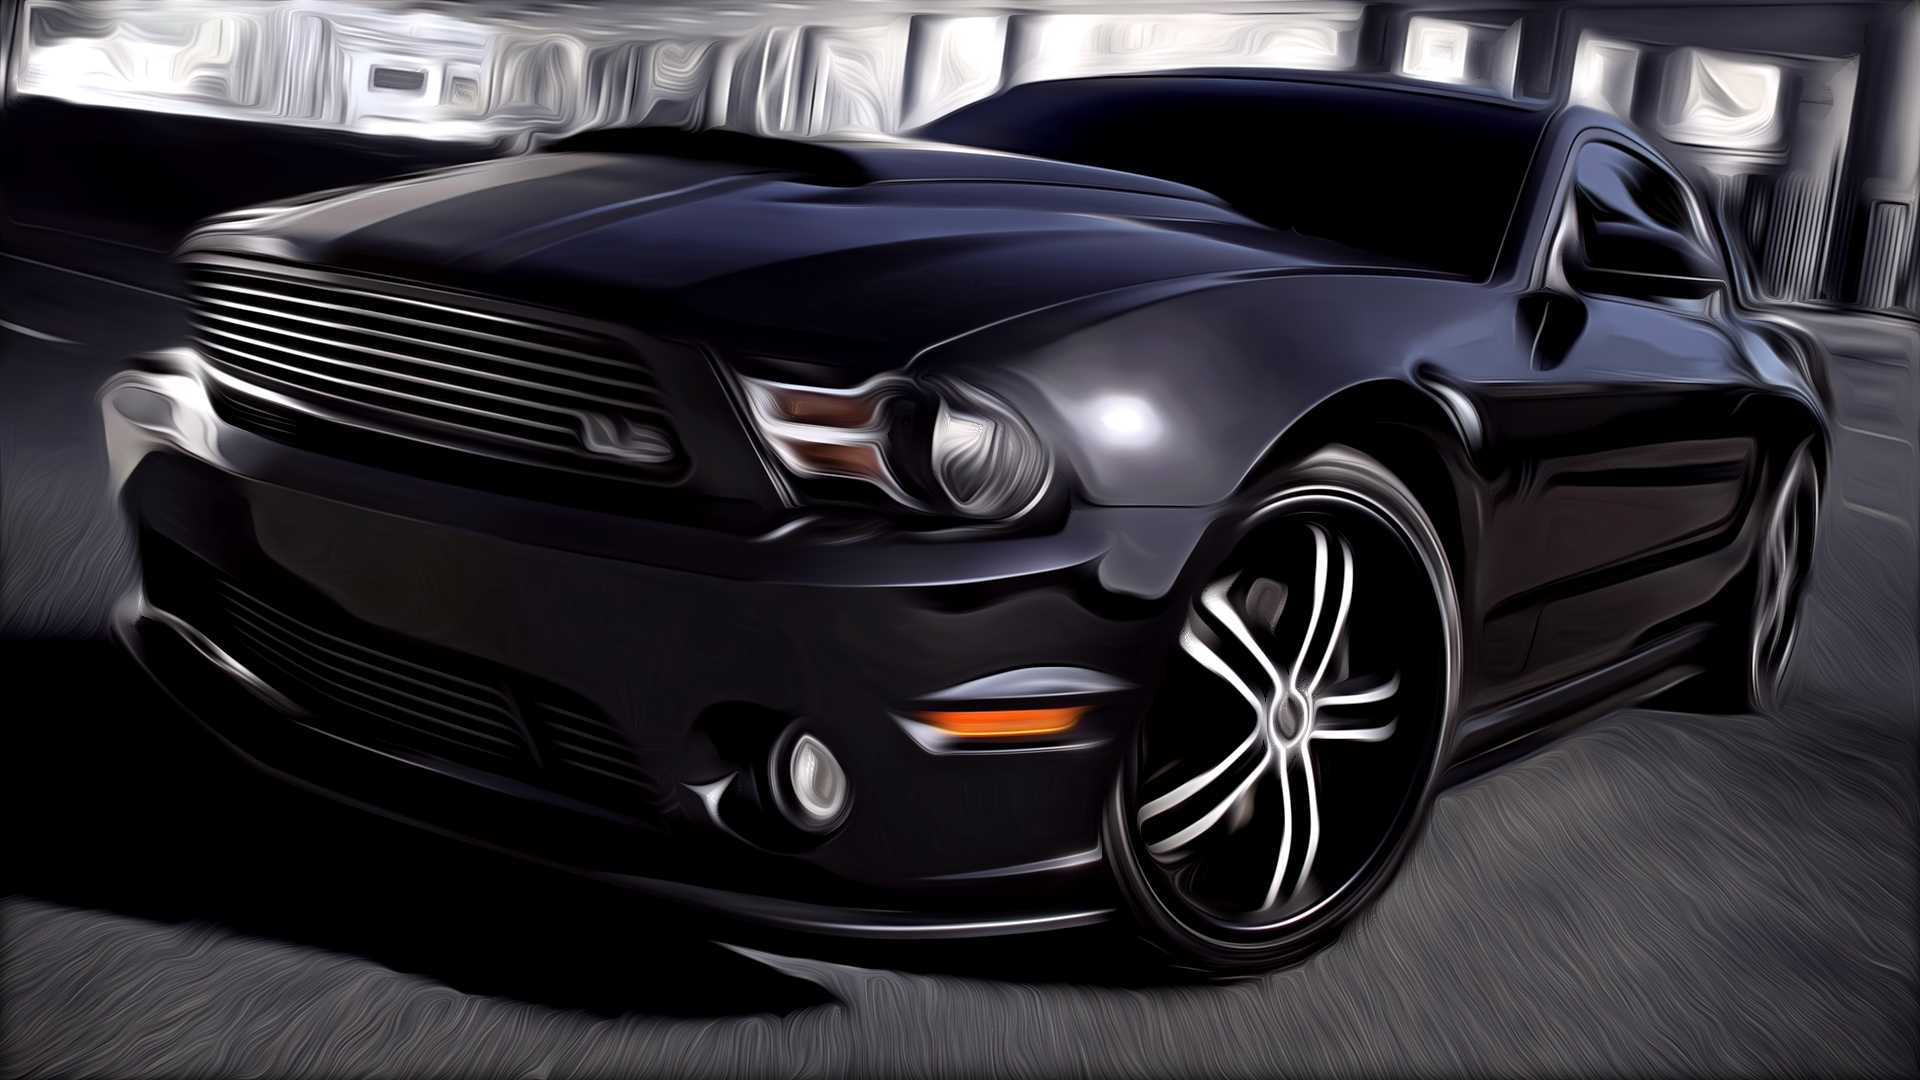 Ford Mustang Painted